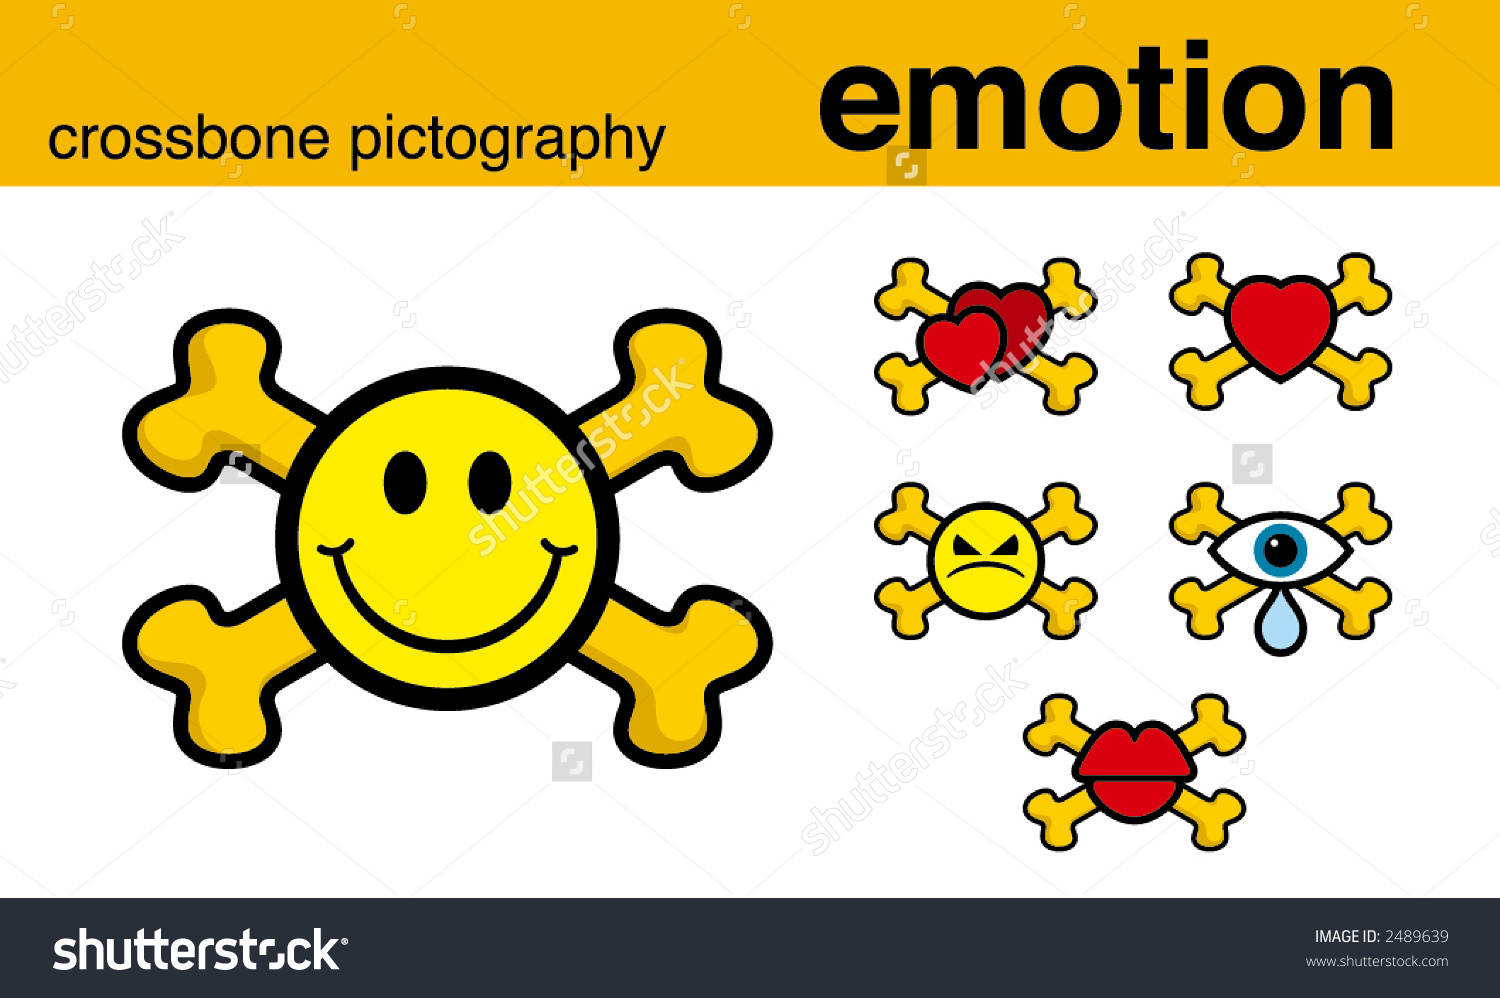 emotion crossbone pictography vector illustration stock Mouth Clip Art Pink Lips Clip Art